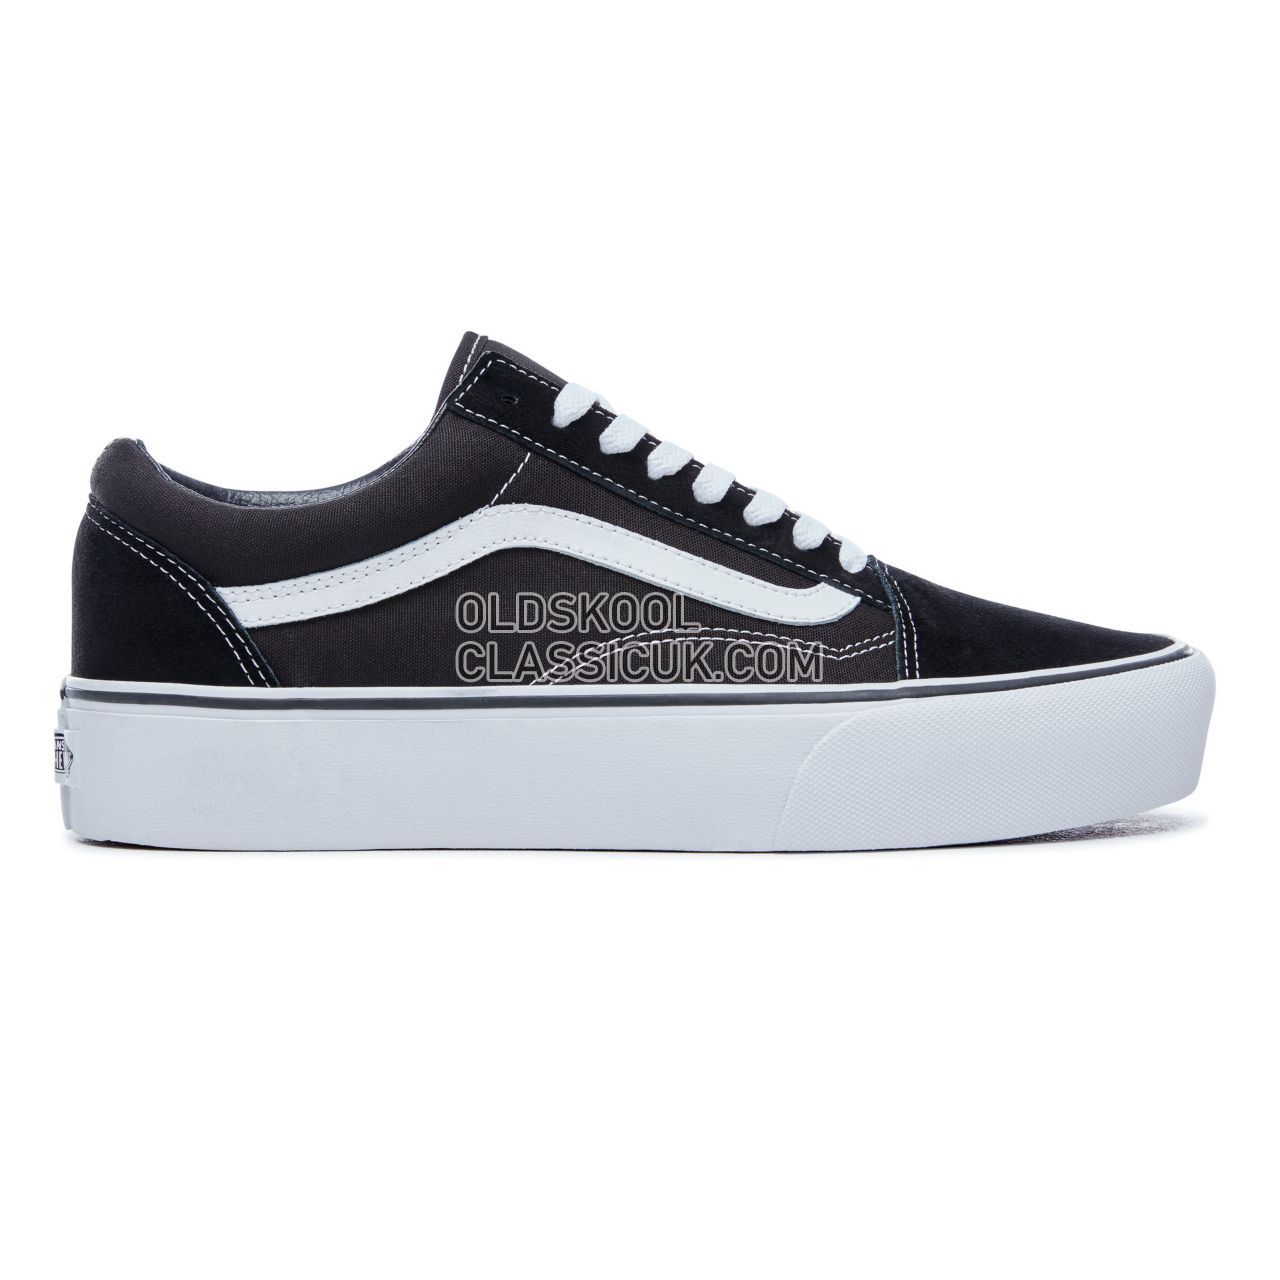 Vans Platform Old Skool Sneakers Womens Black/White VN0A3B3UY28 Shoes